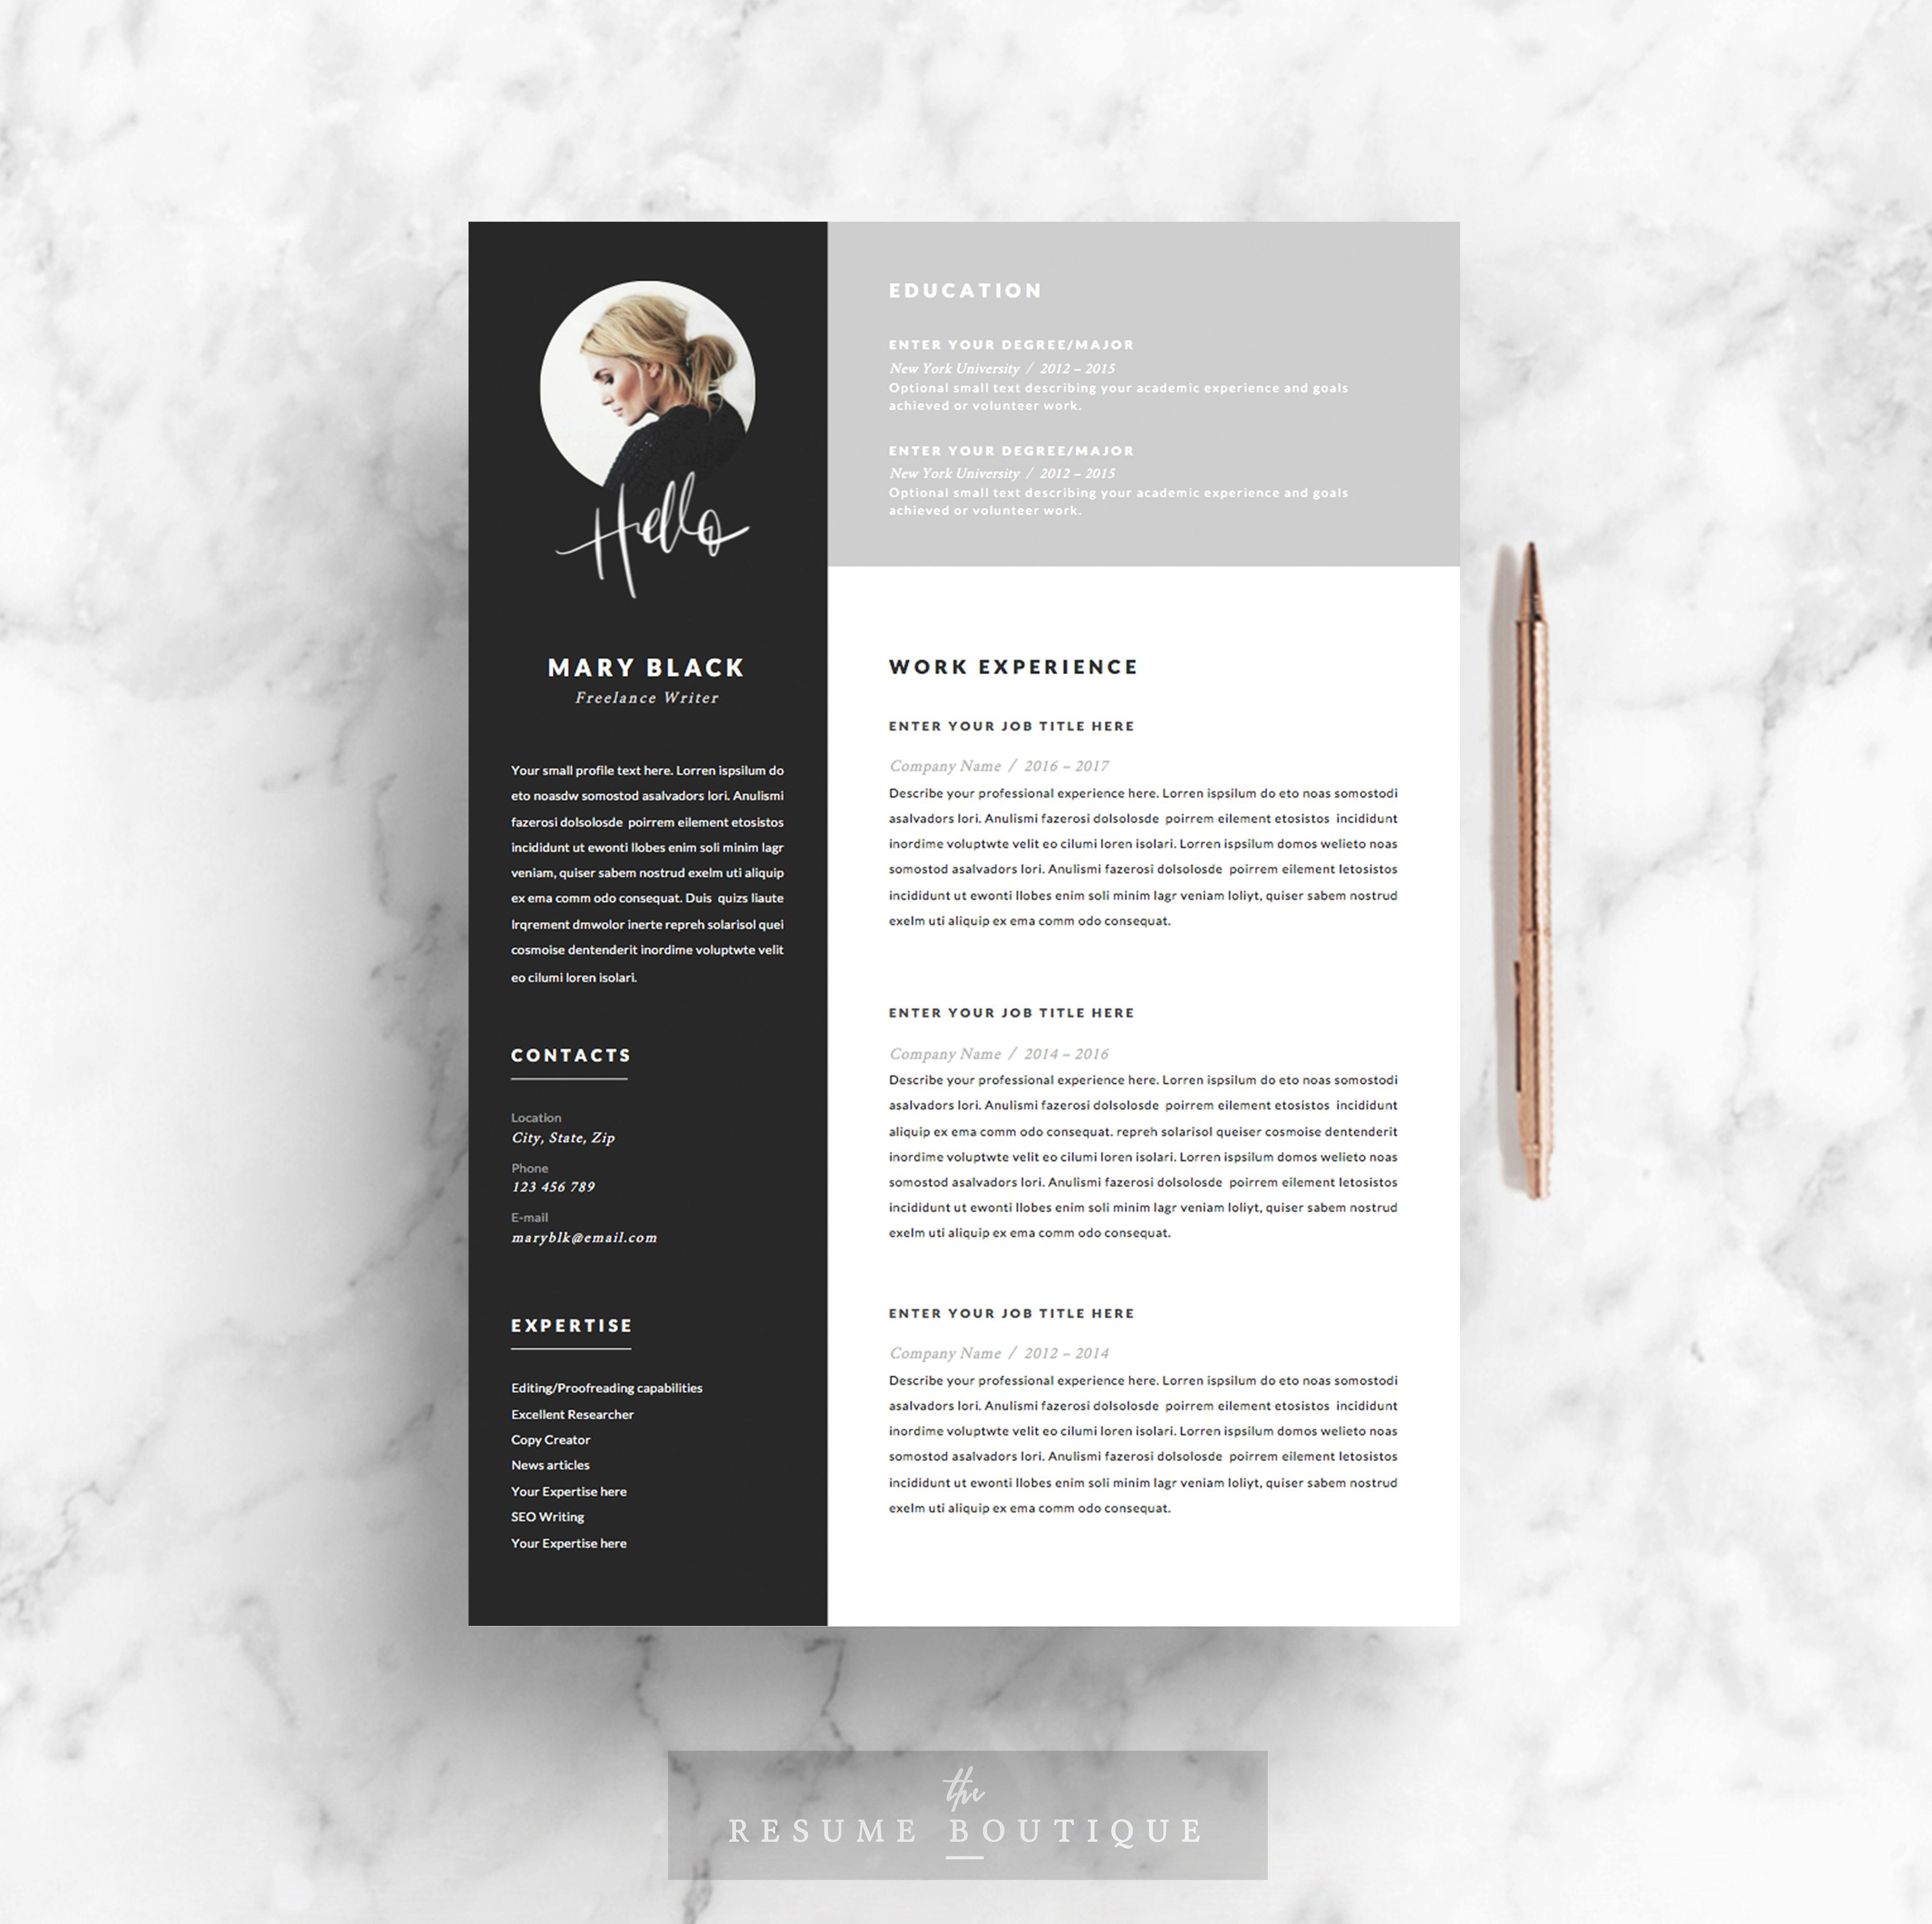 5 page resume template blackie by theresumeboutique on creativemarket - Profesional Resume Format